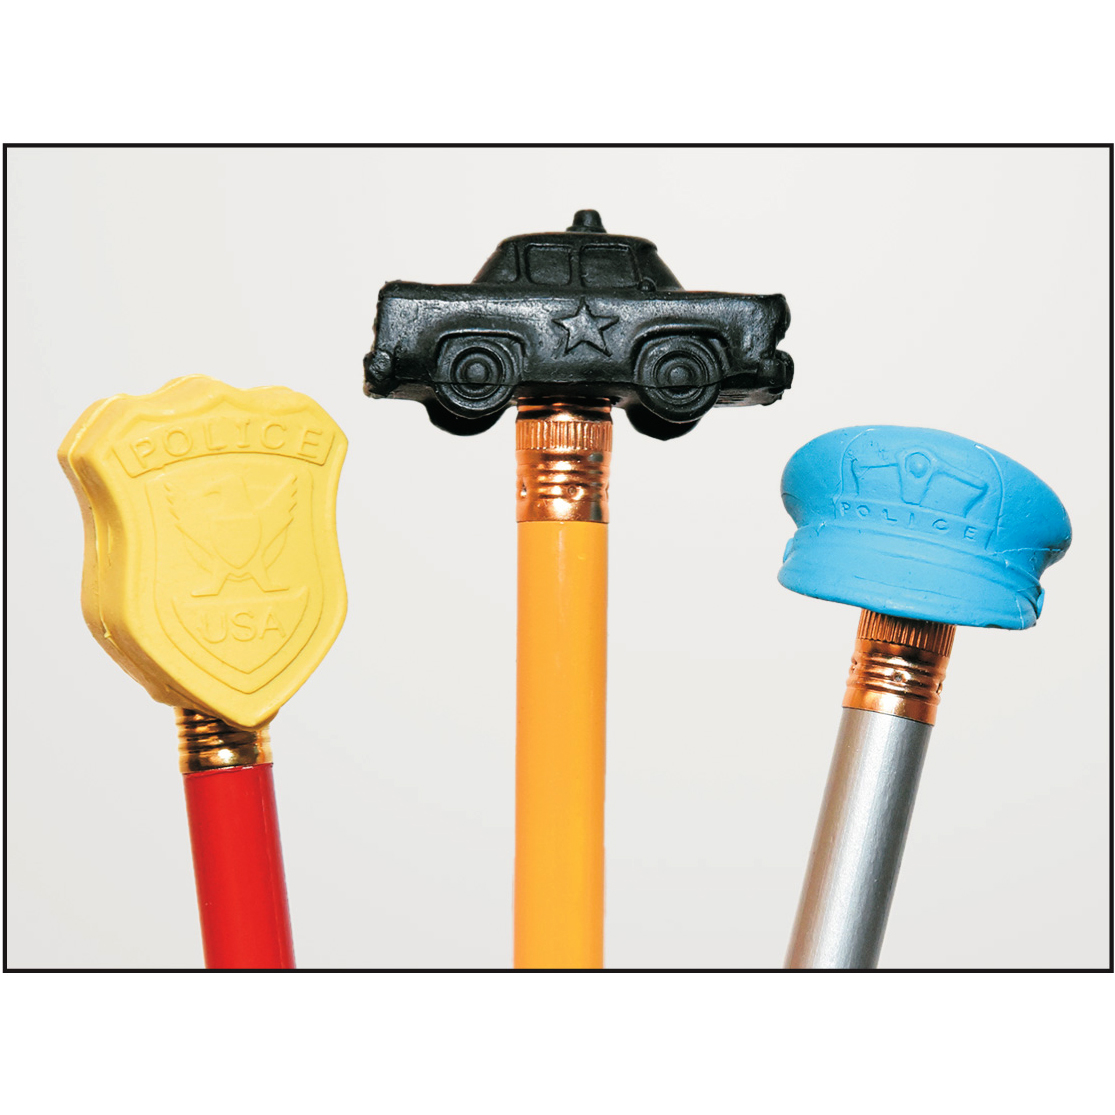 Pencil Top Erasers - Police Themed (Stock)